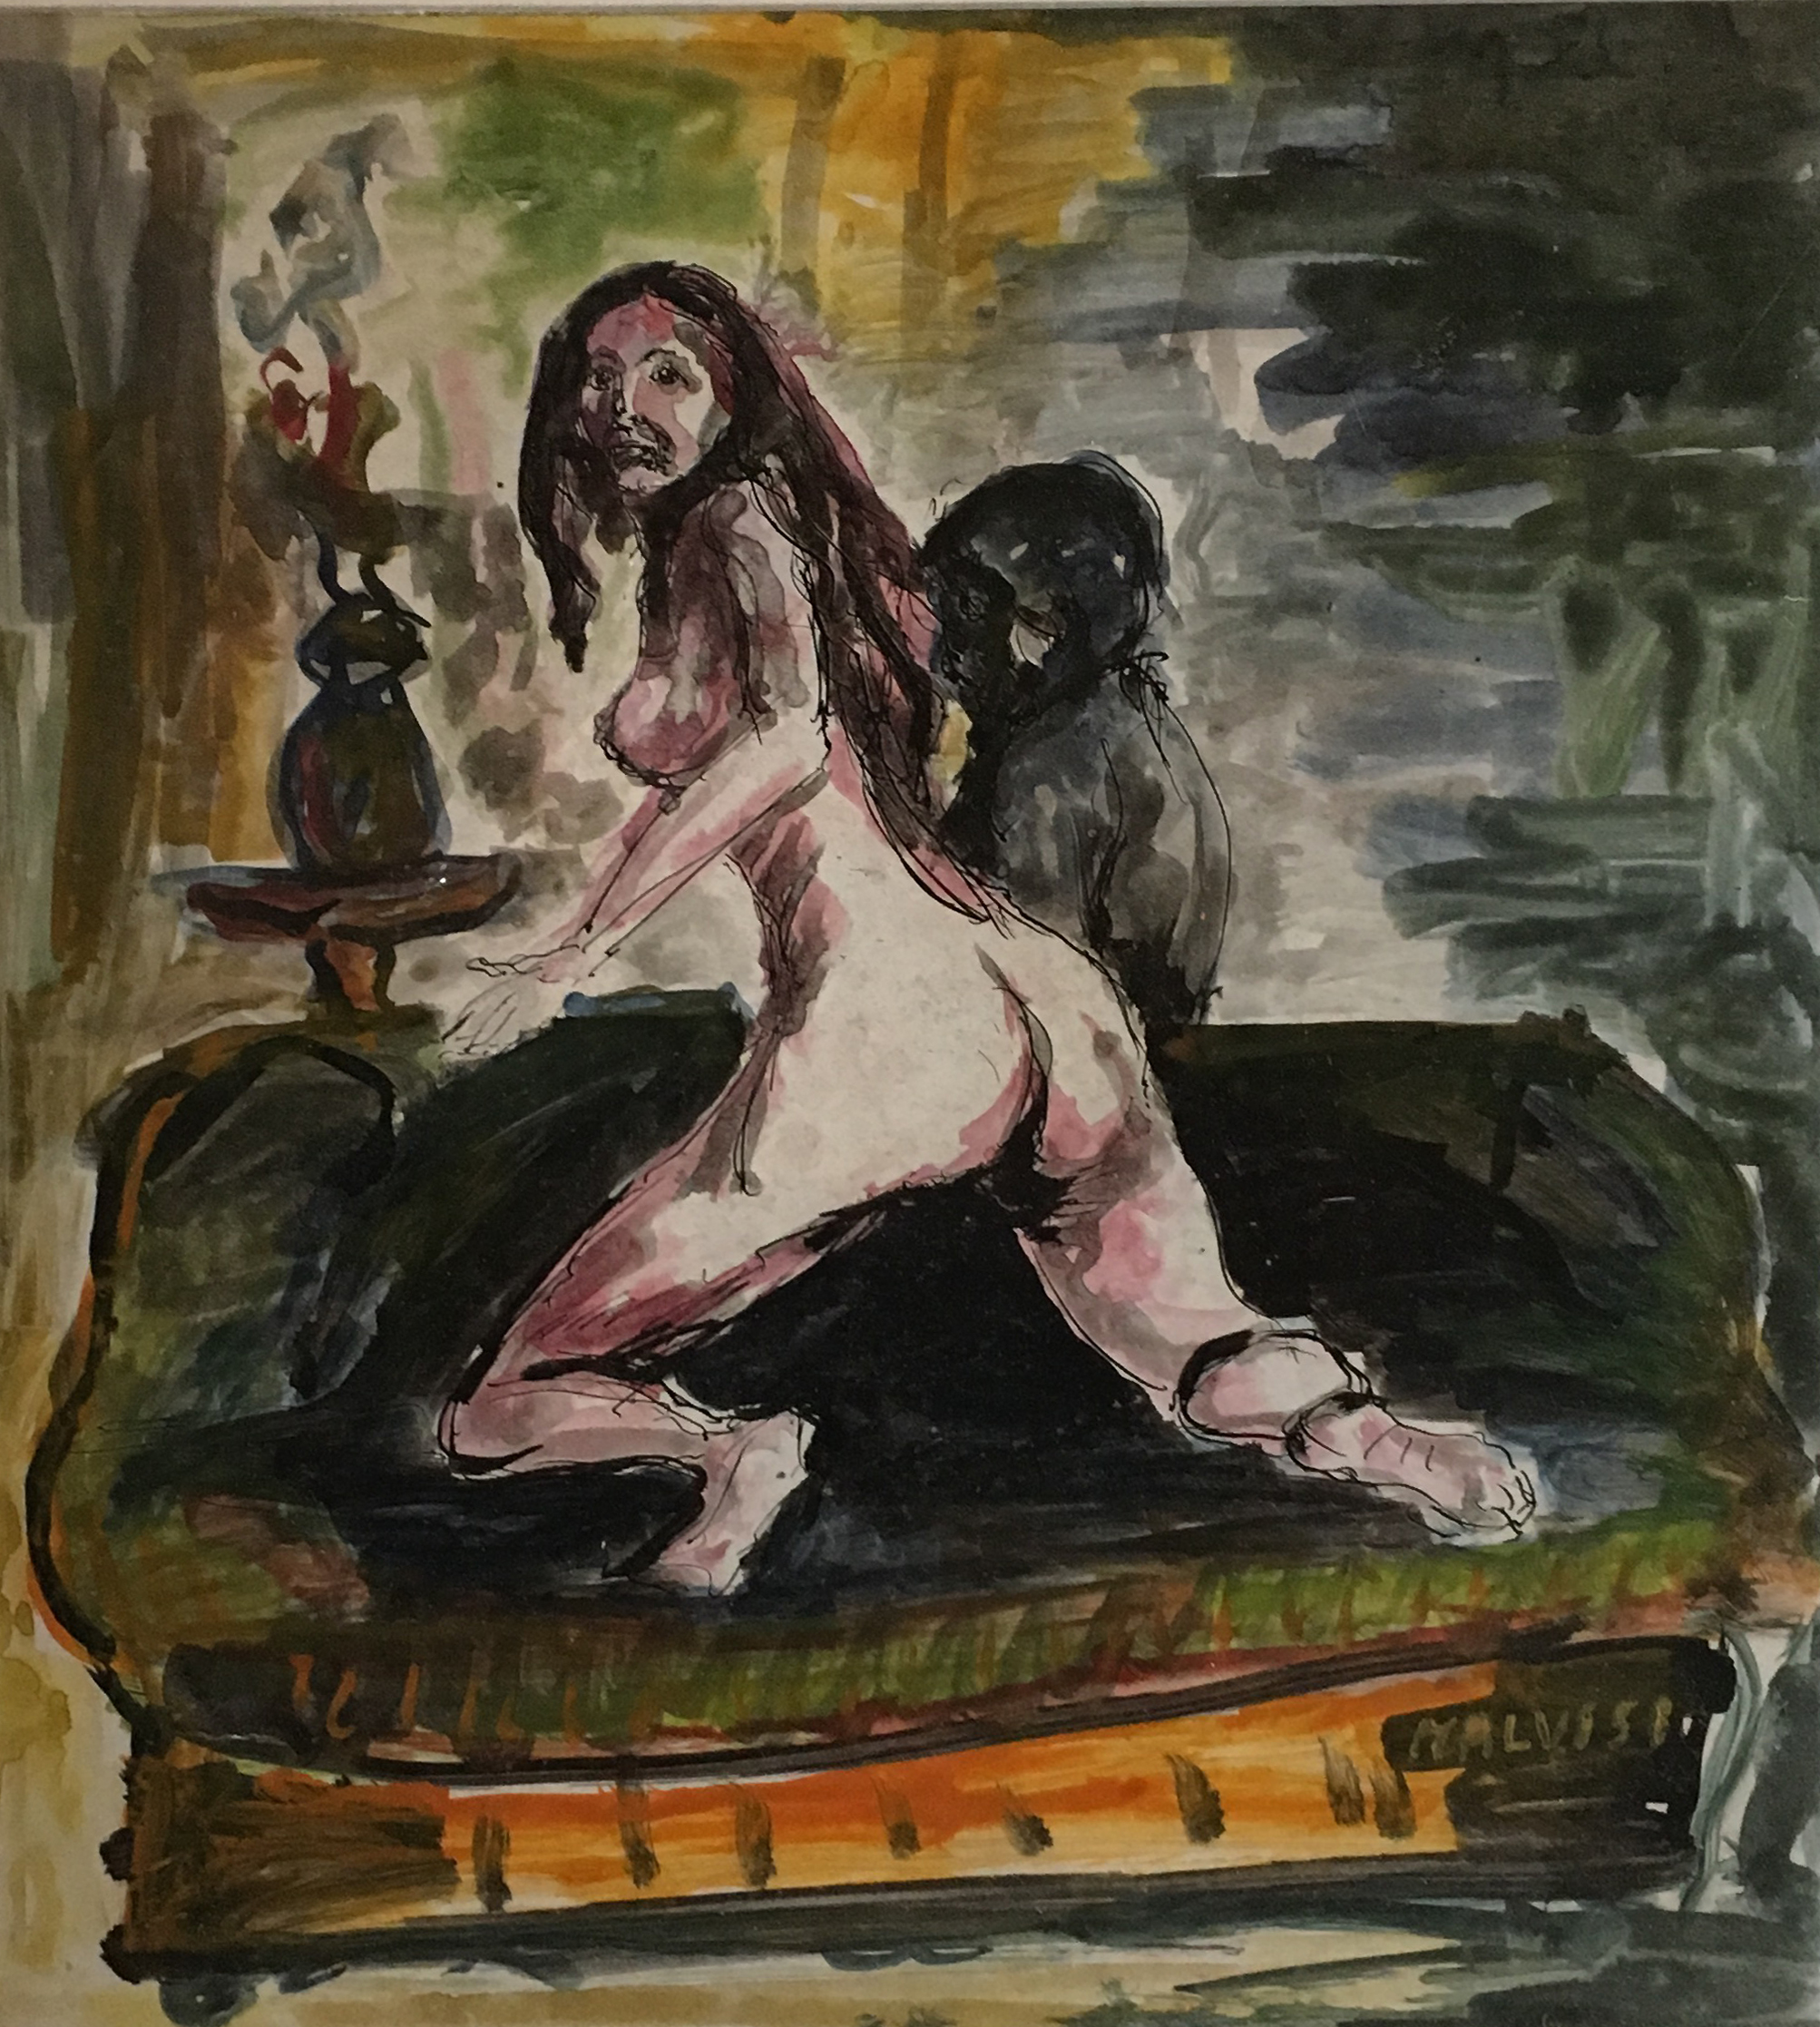 <b>Naked on the sofa</b><br> (Orig.Nudo sul sofa')<br> 1972 Ink and watercolor <br> cm 48 x 57